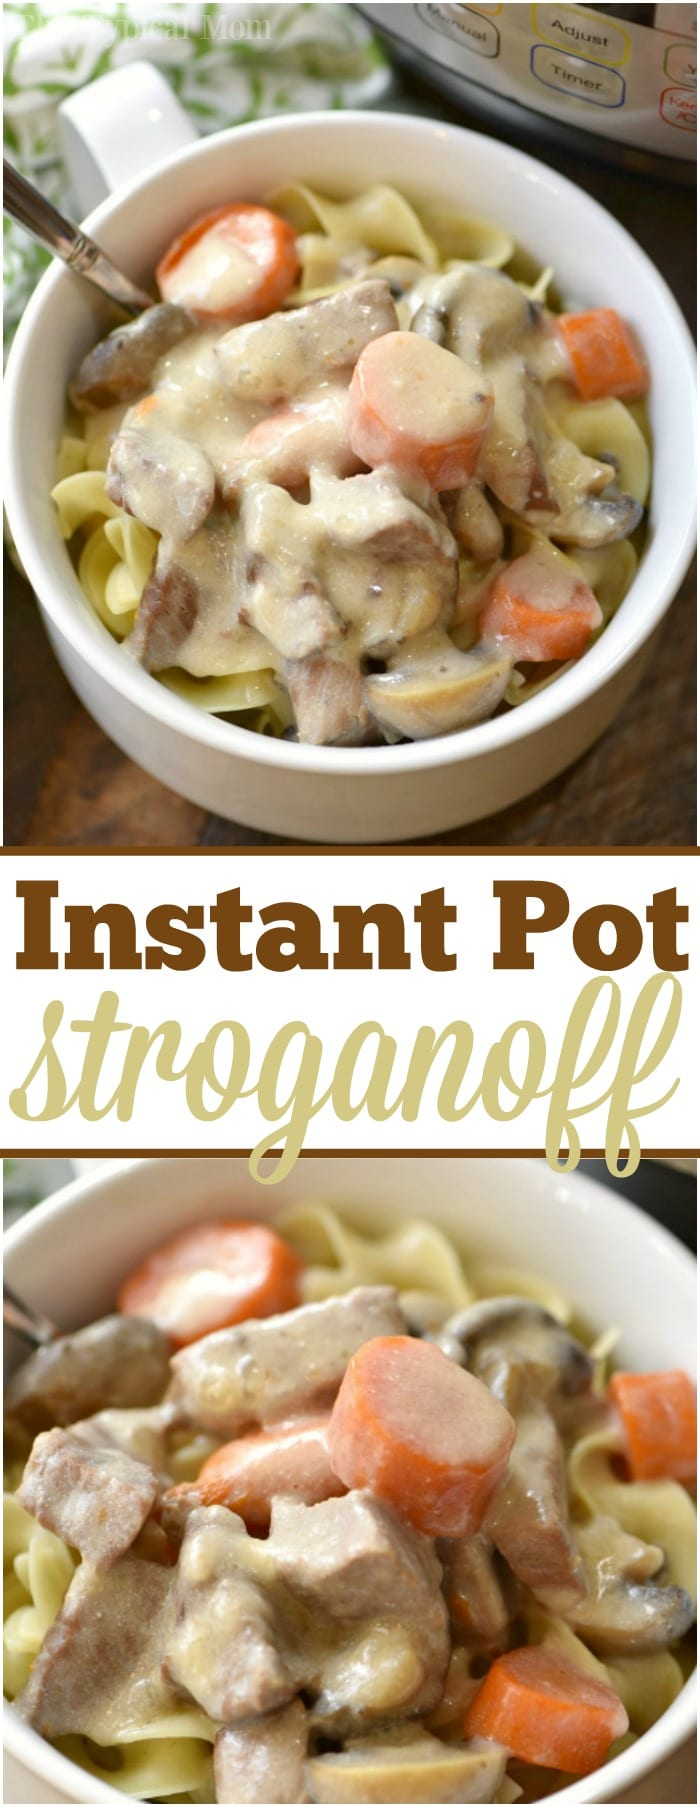 This is a really easy Instant Pot beef stroganoff recipe that is quick and as creamy as you remember from your childhood! Total comfort food made in your pressure cooker in a fraction of the time it used to. With a creamy sauce and tender beef it is sure to please everyone in your house for dinner. #instantpot #pressurecooker #beef #stroganoff #easy #recipe